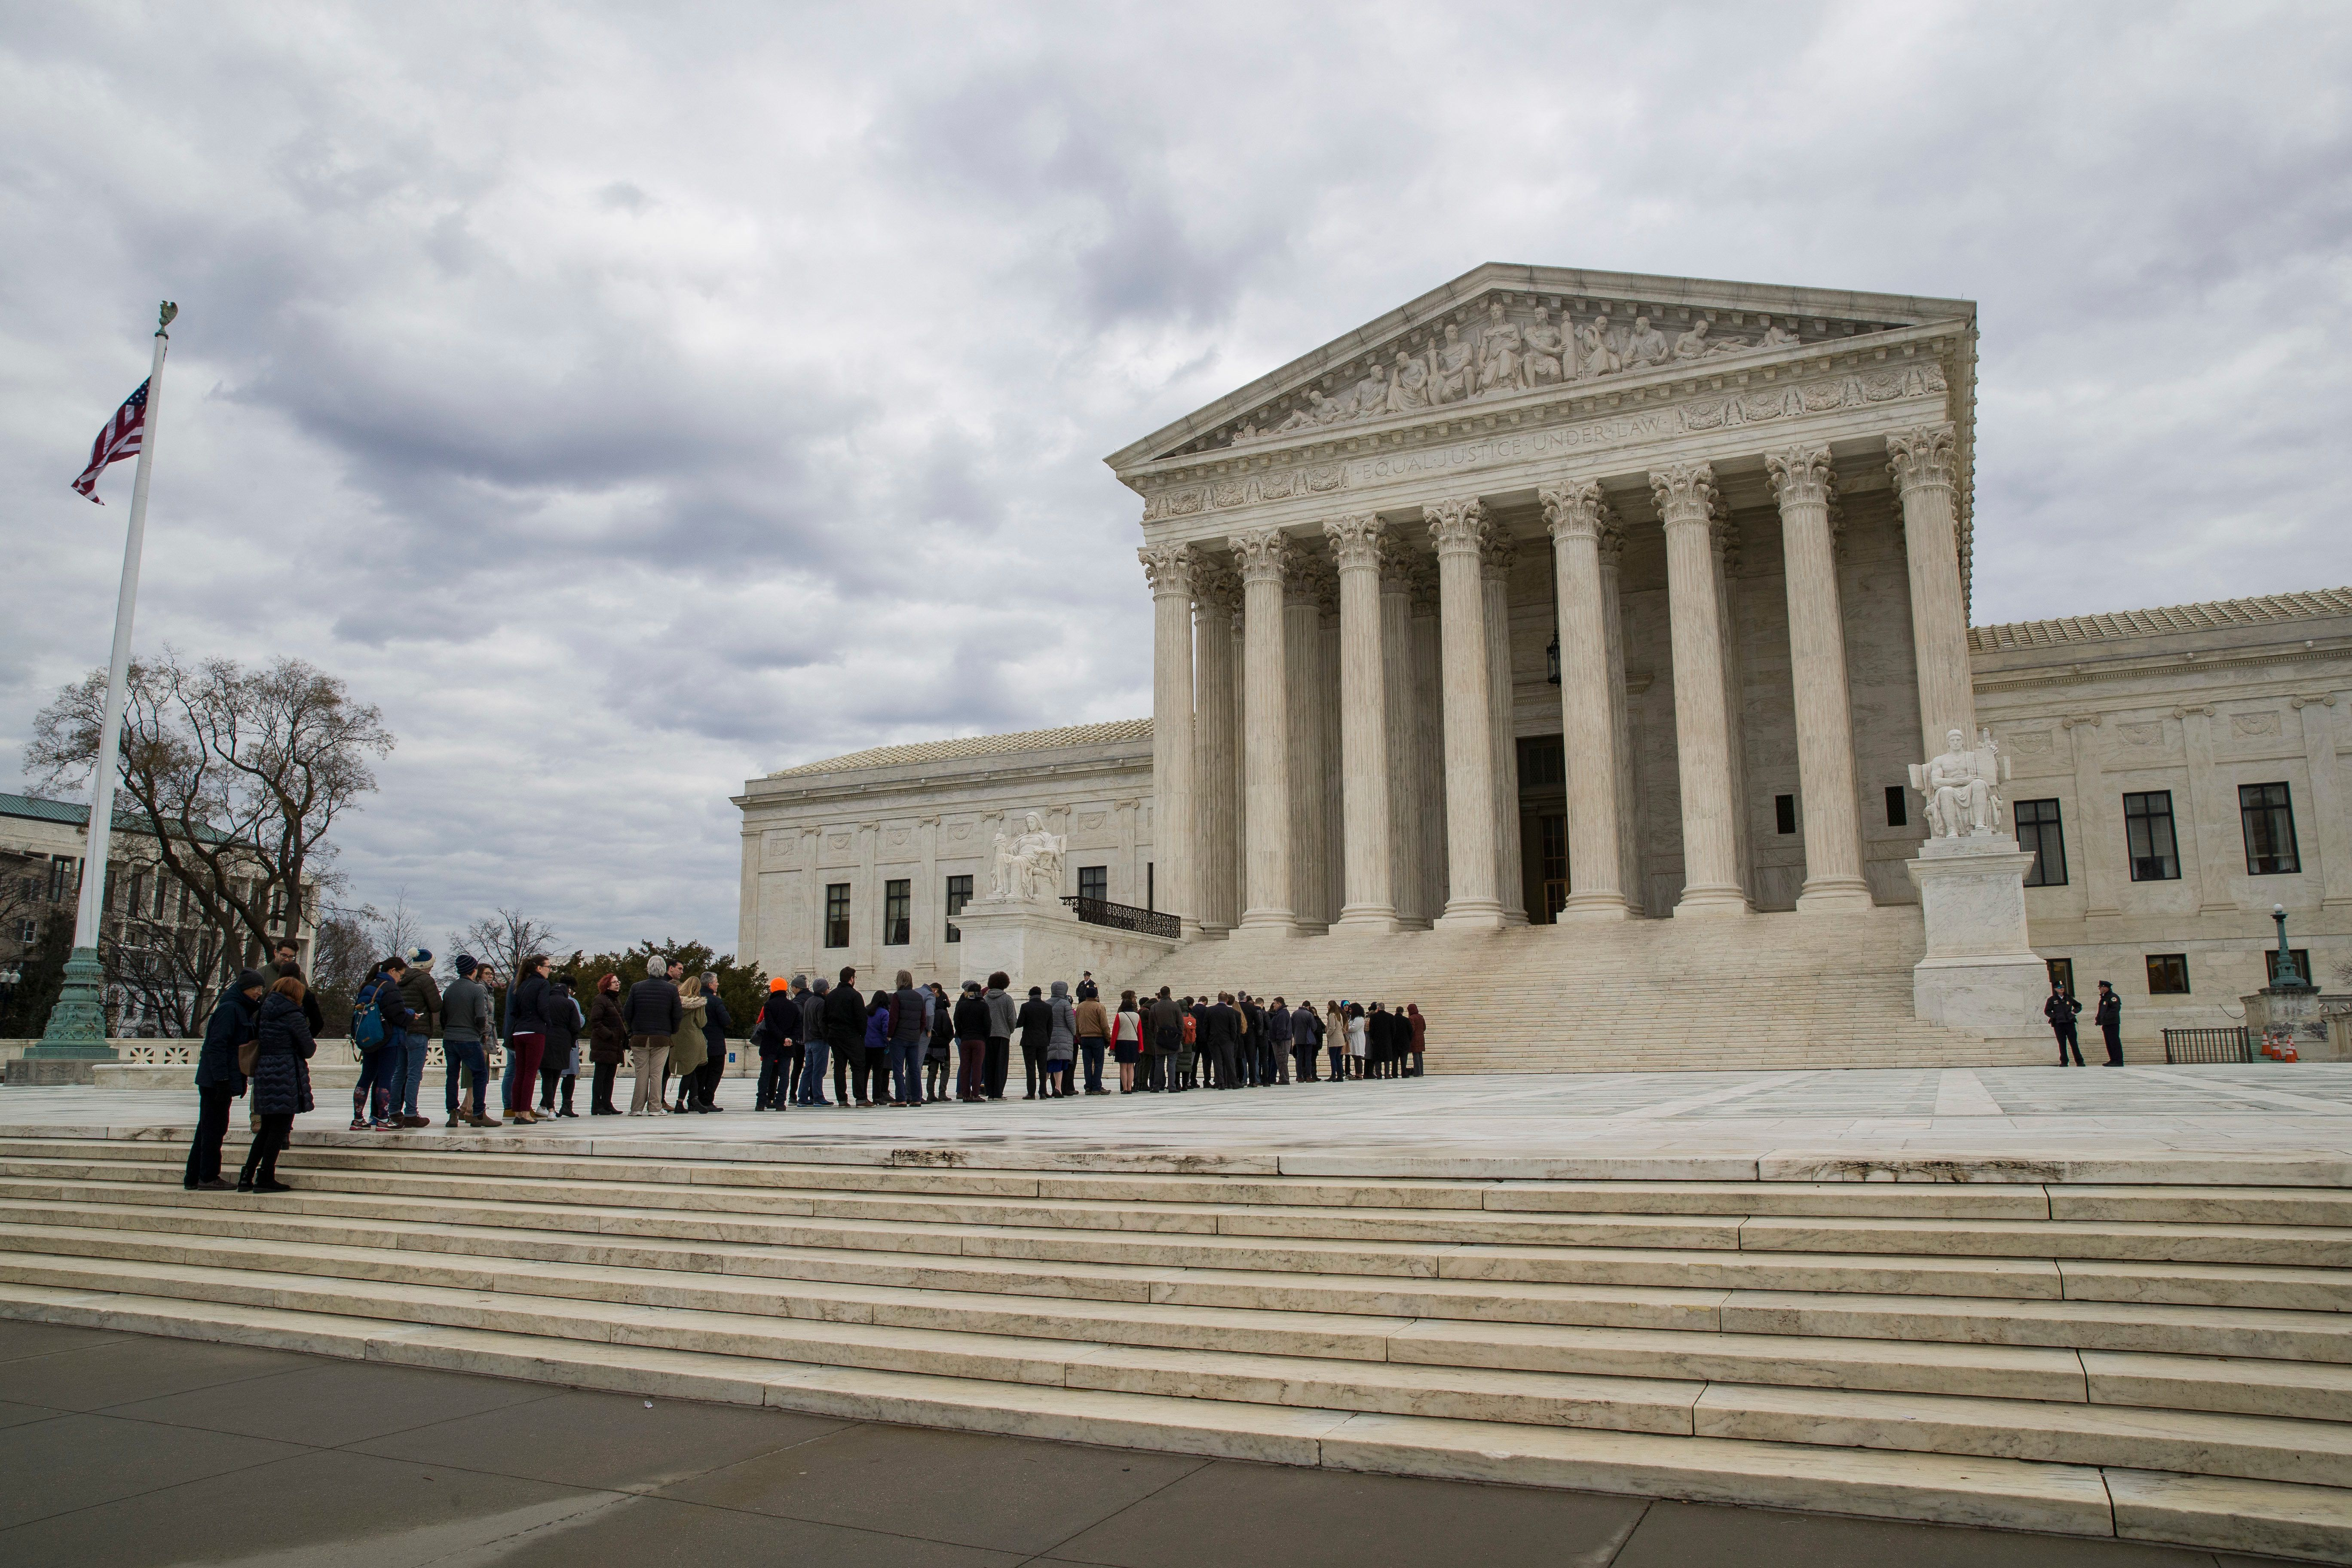 People wait in line to hear arguments before the Supreme Court, Tuesday, Jan. 8, 2019, in Washington. (AP Photo/Alex Brandon)